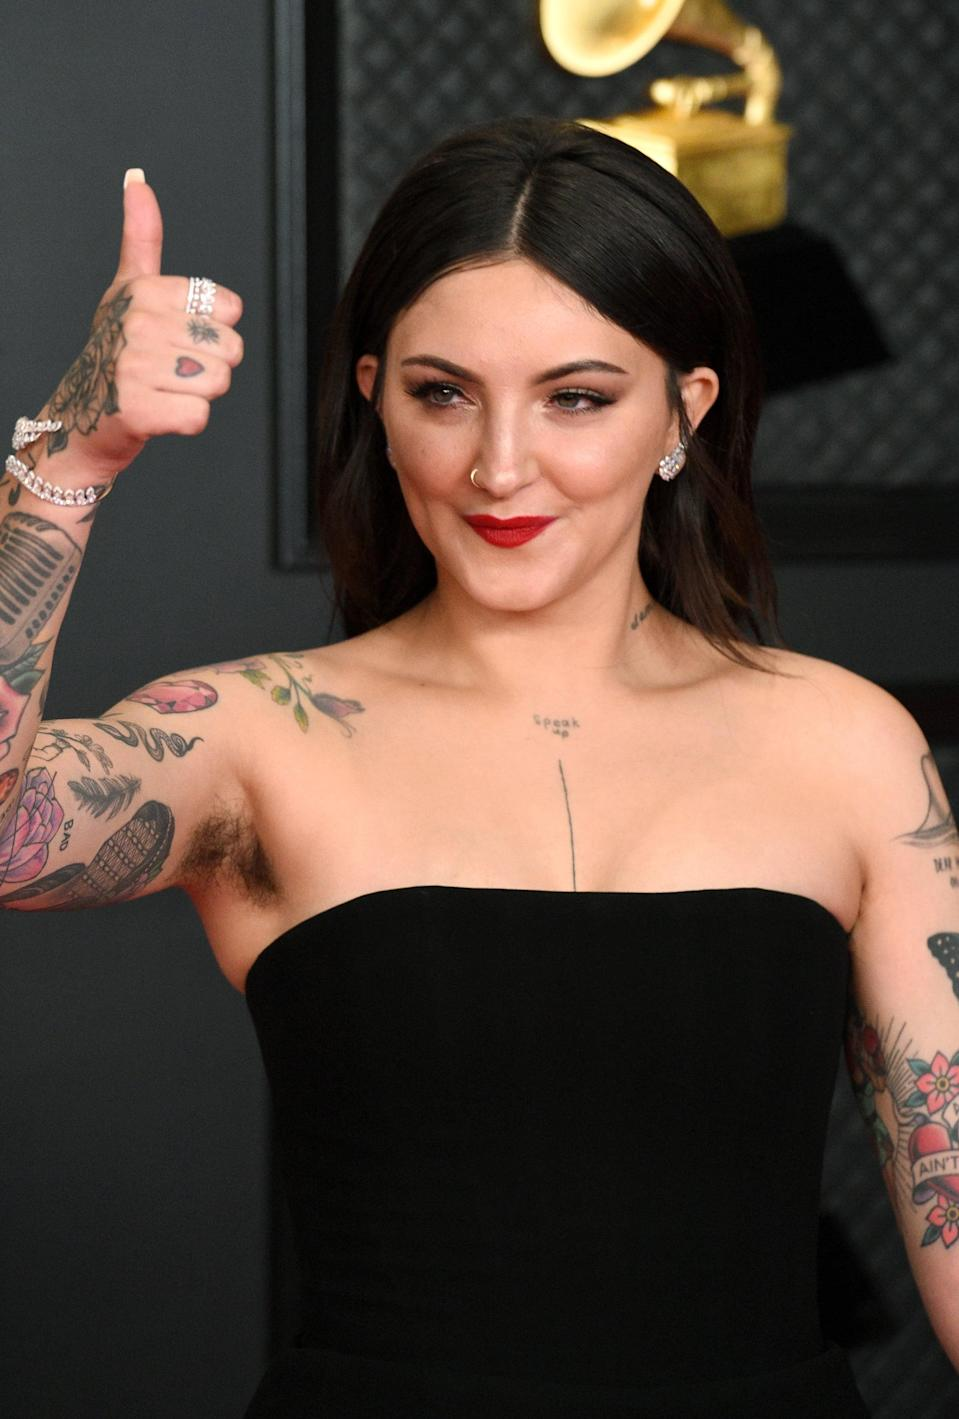 """<p>Fans applauded Julia Michaels on social media last year after noticing her underarm hair in her new music video for """"Lie Like This."""" The singer tweeted a few months ago that she was going to <a href=""""https://www.popsugar.com/beauty/julia-michaels-beauty-interview-48265319"""" class=""""link rapid-noclick-resp"""" rel=""""nofollow noopener"""" target=""""_blank"""" data-ylk=""""slk:stop shaving her armpits for good"""">stop shaving her armpits for good</a>: """"Honestly, I'm not shaving my armpits ever again. I don't know why I ever did before. Social norms can eat an eggplant.""""</p> <div class=""""pullquote-container""""><blockquote class=""""pullquote"""">""""There's something really liberating about doing the things that people tell you not to do . . . If it's something as simple as growing my armpit hair out, I'm down for it.""""</blockquote></div> <p>She later explained to POPSUGAR the reason behind her decision: """"I had taken a trip with some of my friends and [my underarm hair] had started to grow out, and when I shaved it, I didn't feel like myself; it was really strange,"""" Michaels said. """"There's something really liberating about doing the things that people tell you not to do, and I get a kick out of that. If it's something as simple as growing my armpit hair out, I'm down for it. You'd be surprised at how many men comment on my social media still being like 'That's disgusting. You should shave it,' and it's like, why do you feel like you can comment on my body?""""</p>"""